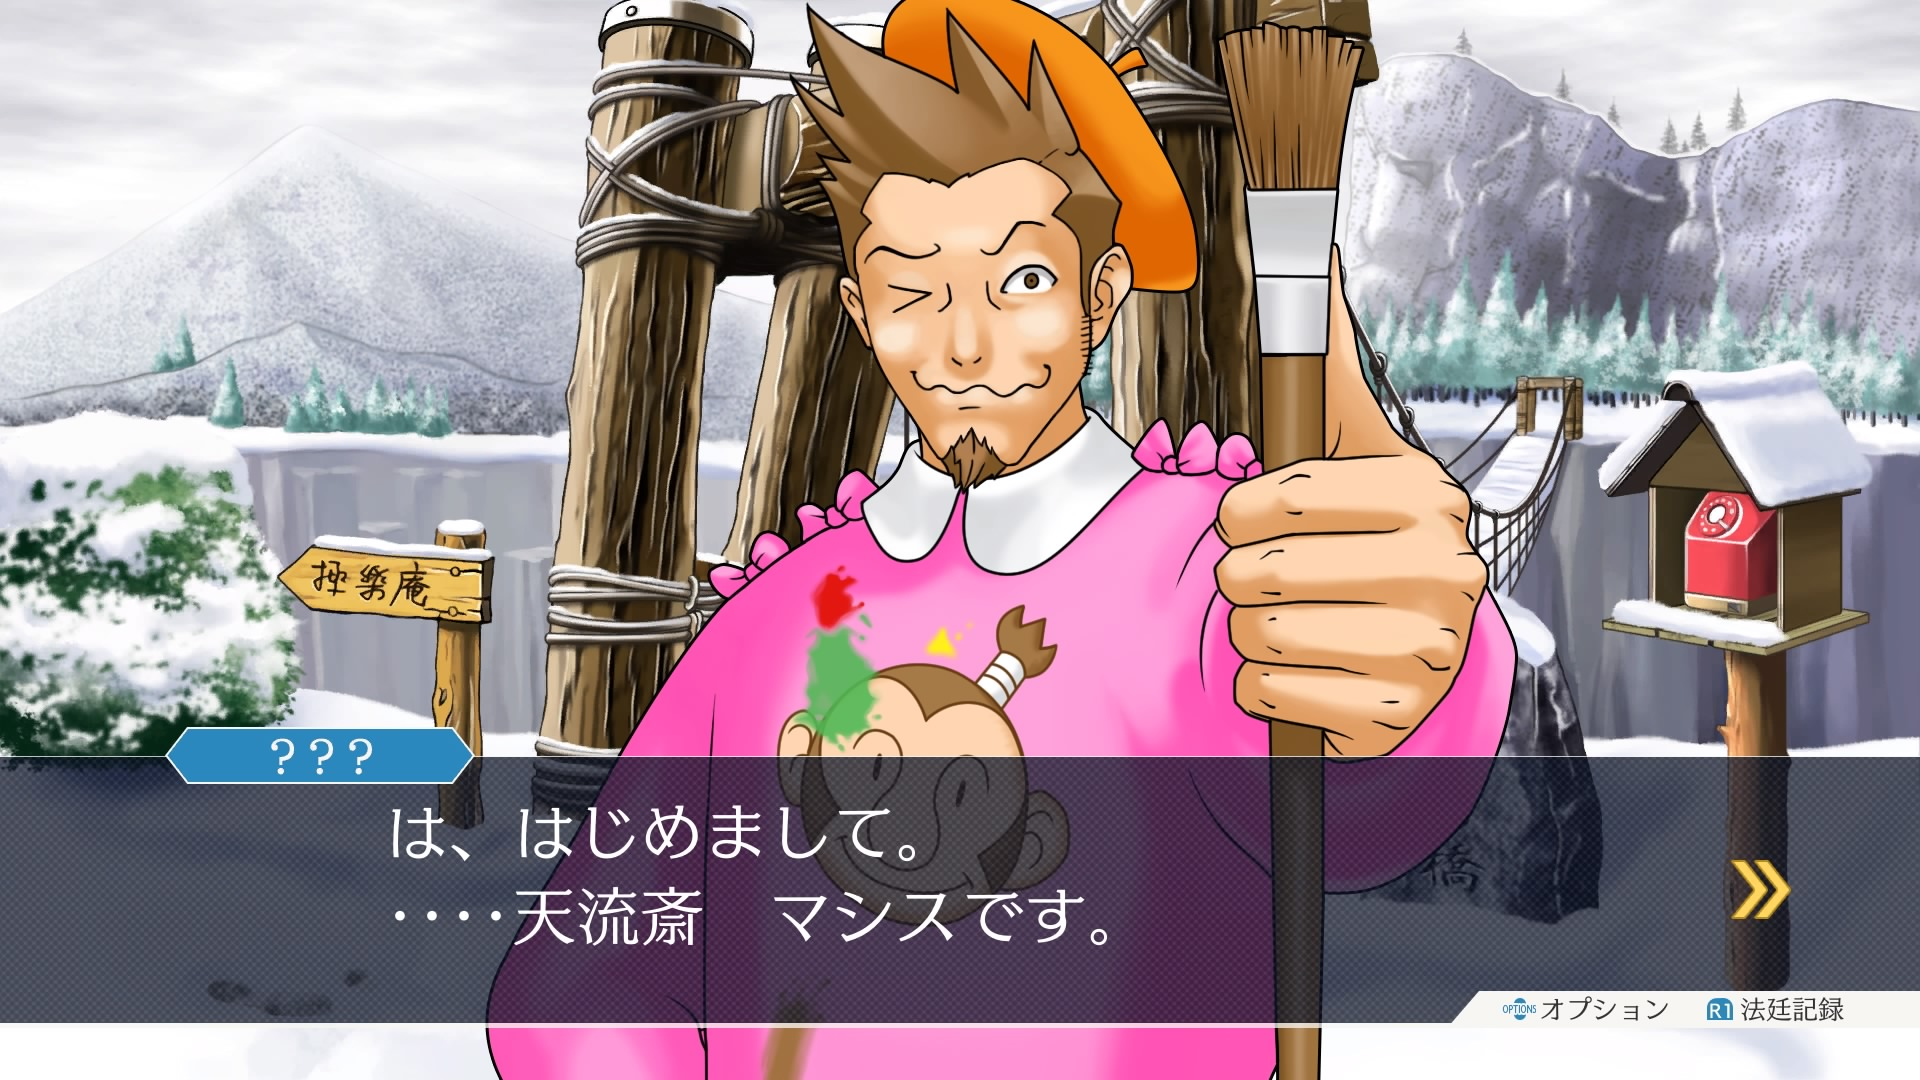 Phoenix Wright Ace Attorney Trilogy Another Batch Of Screens